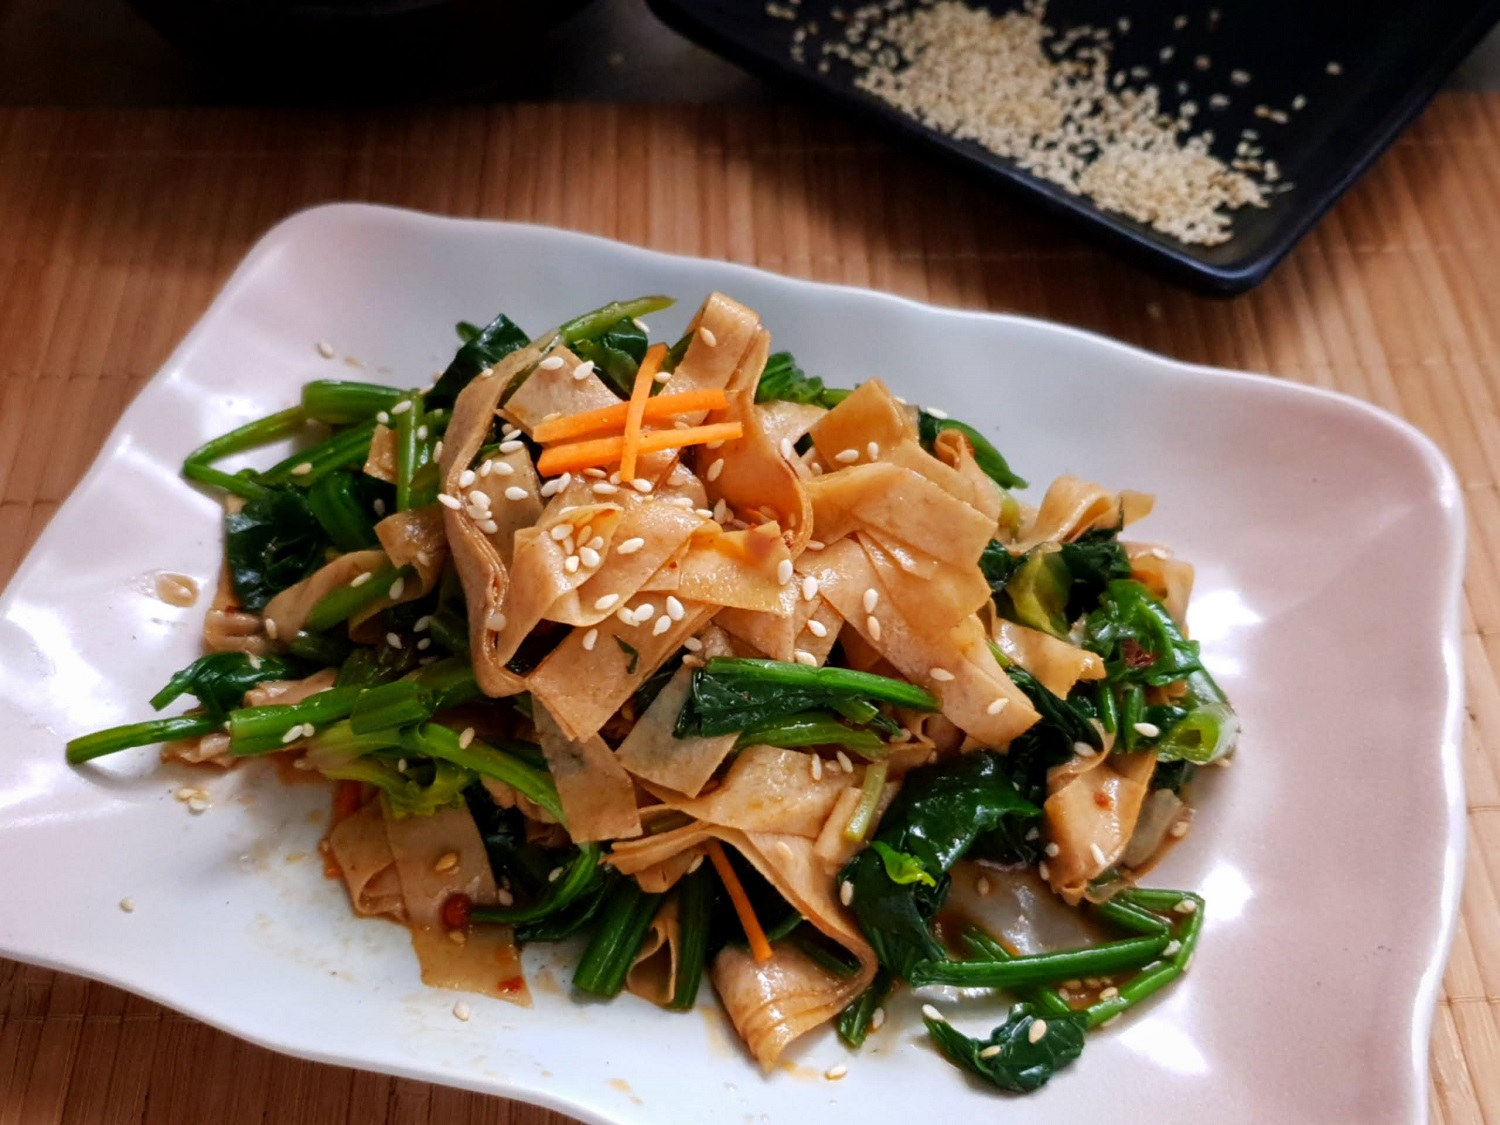 Spinach and Tofu skin salad